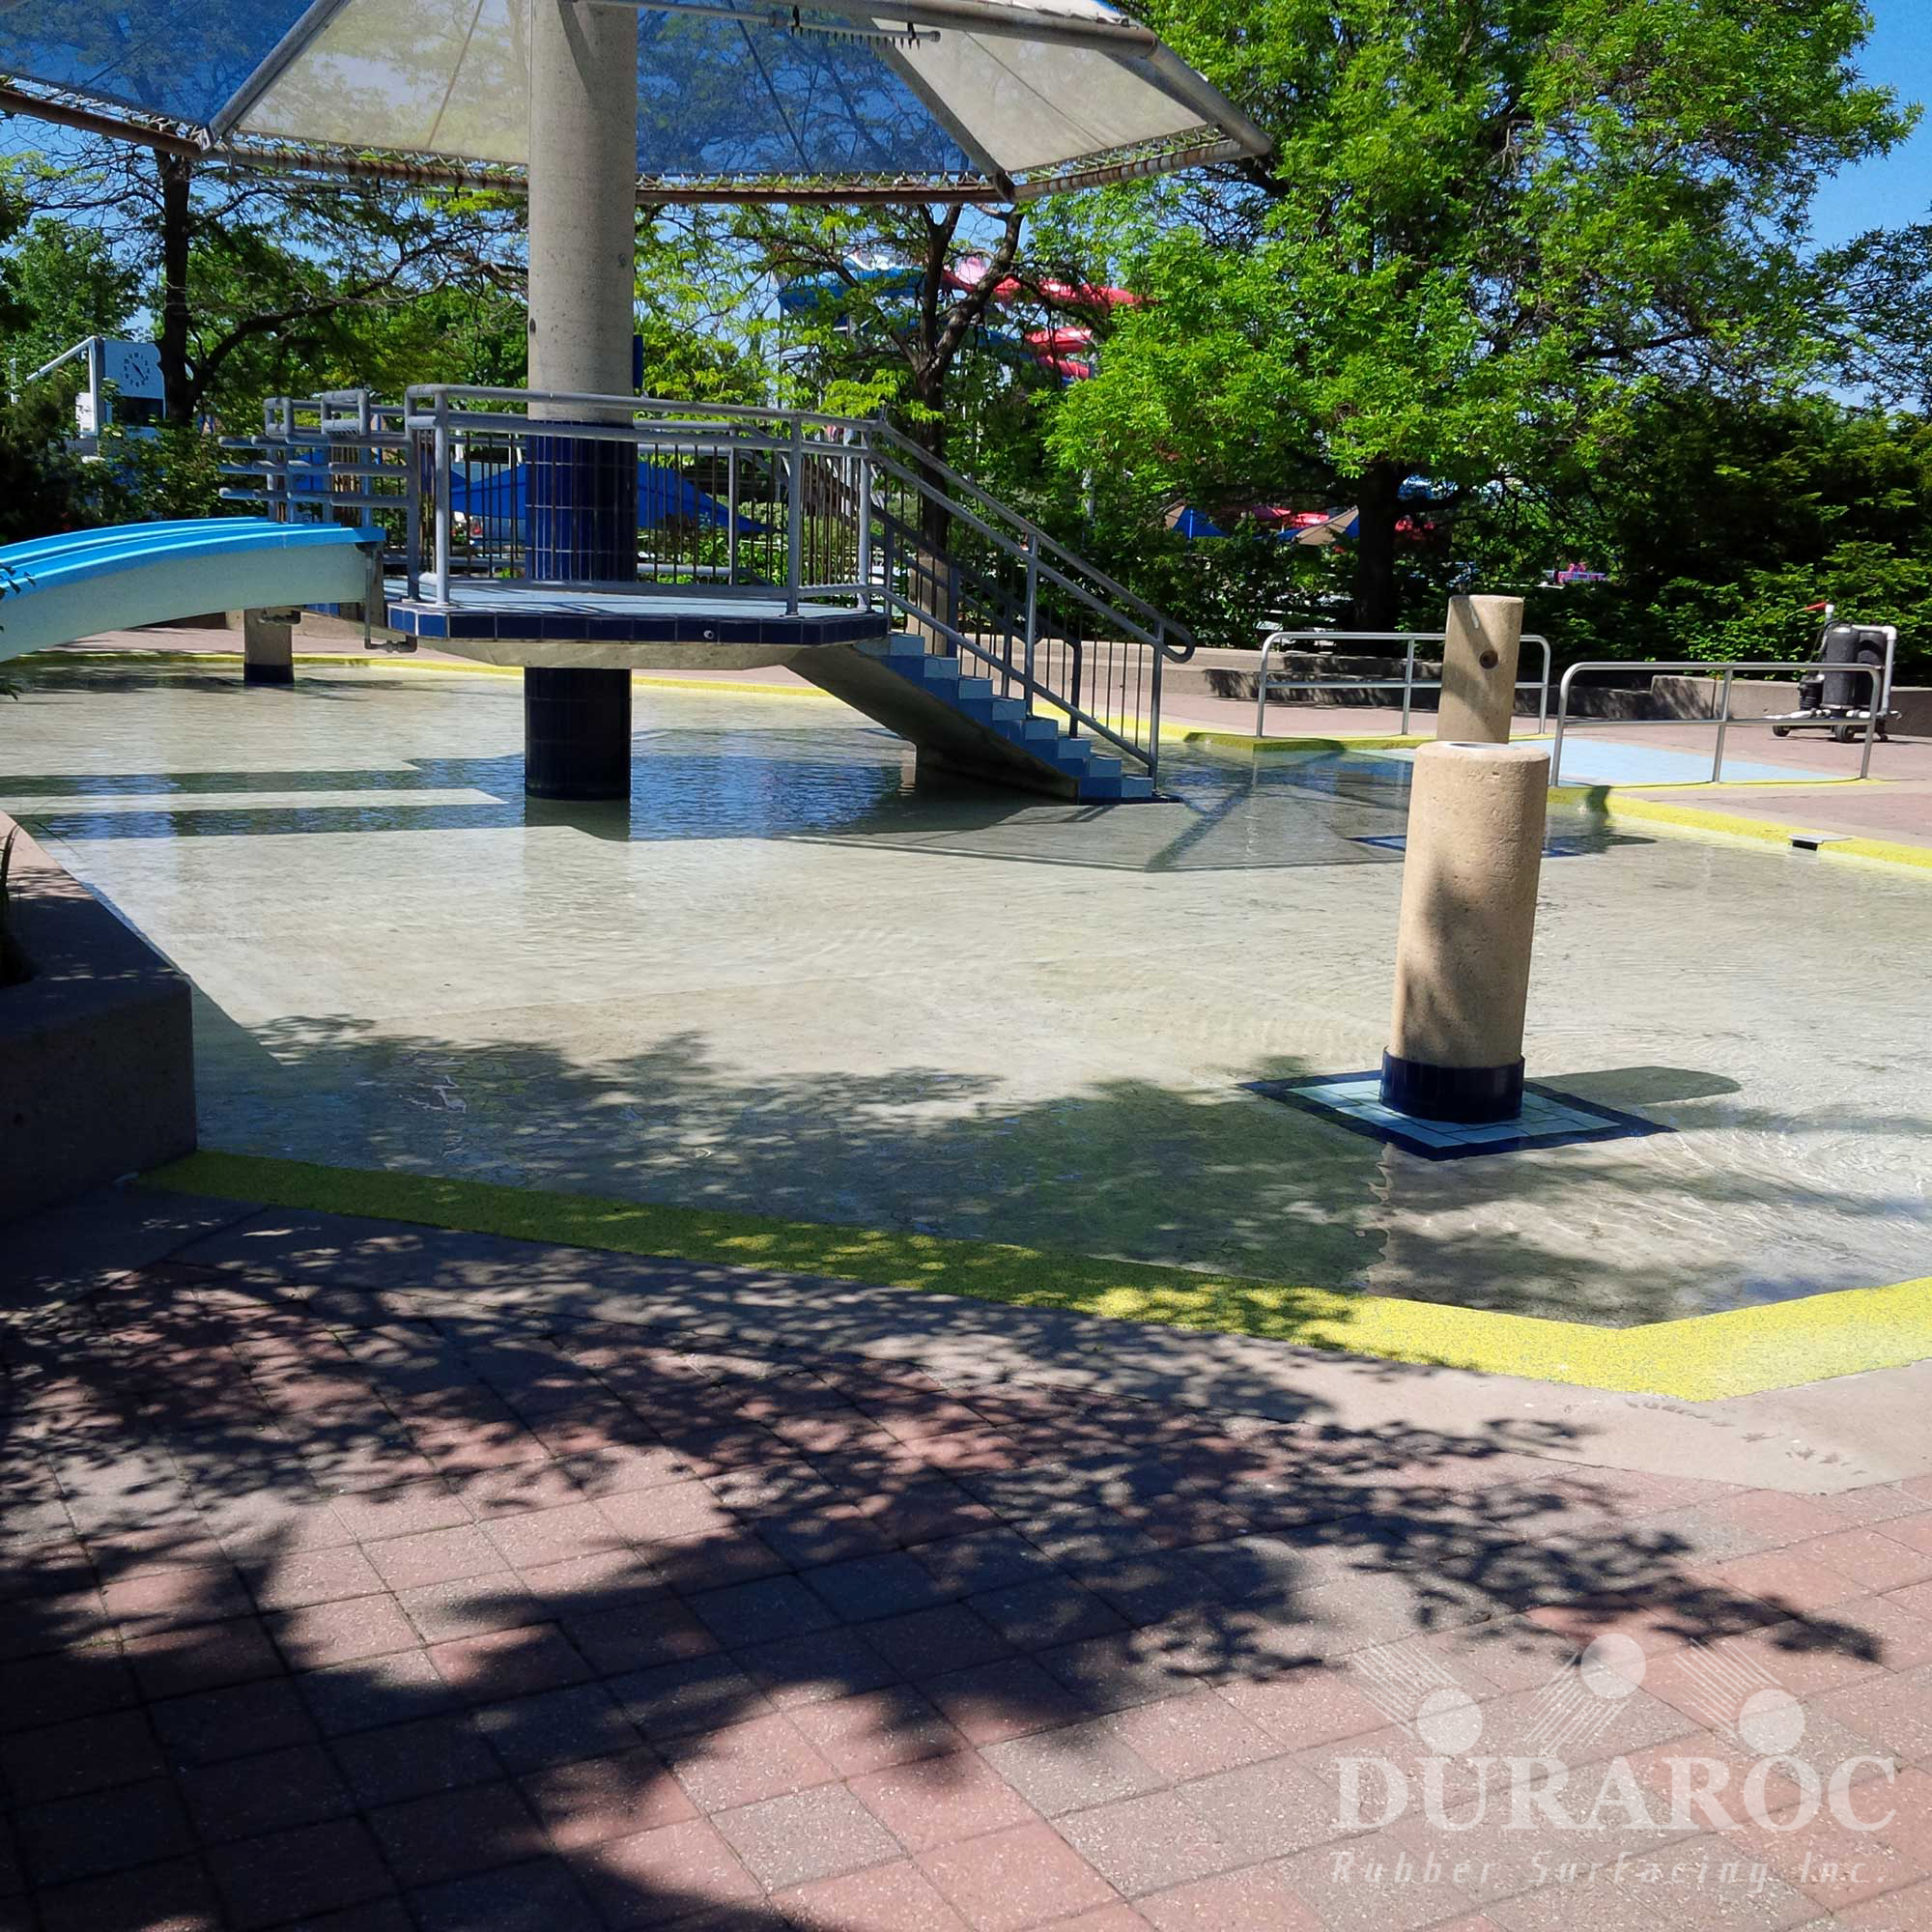 Duraroc Water Playground